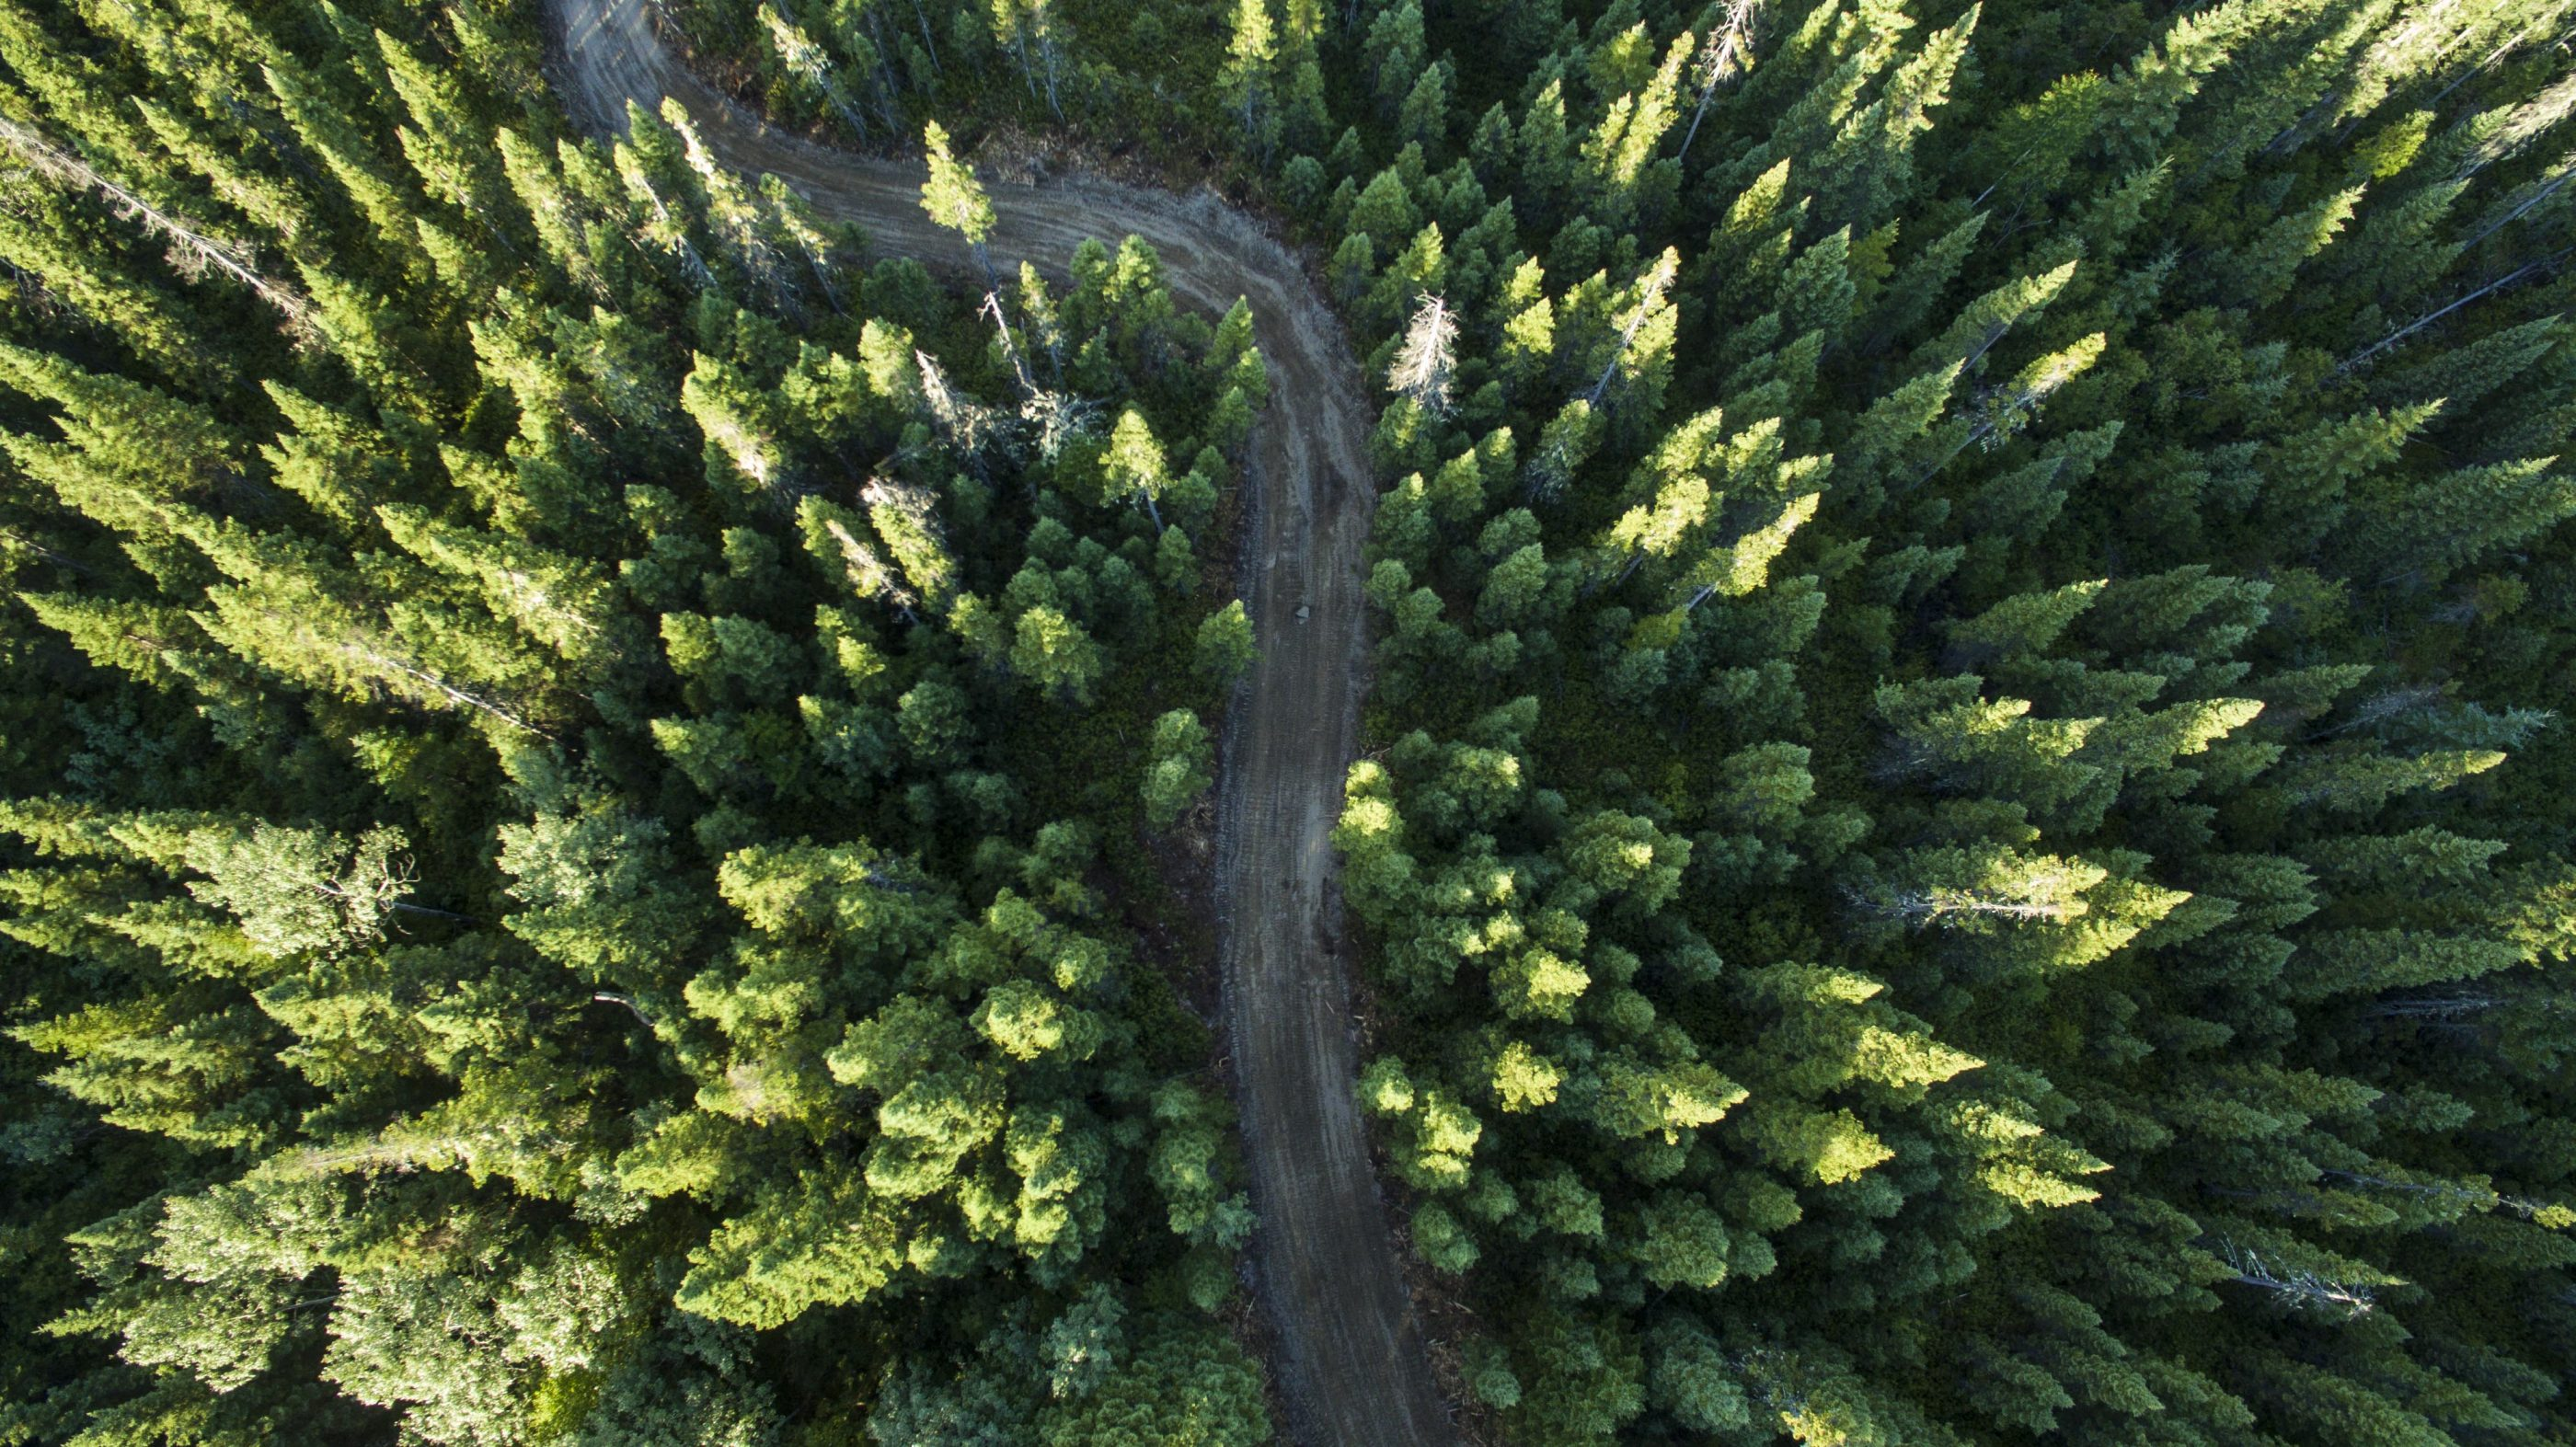 Aerial Image of Forestry Road